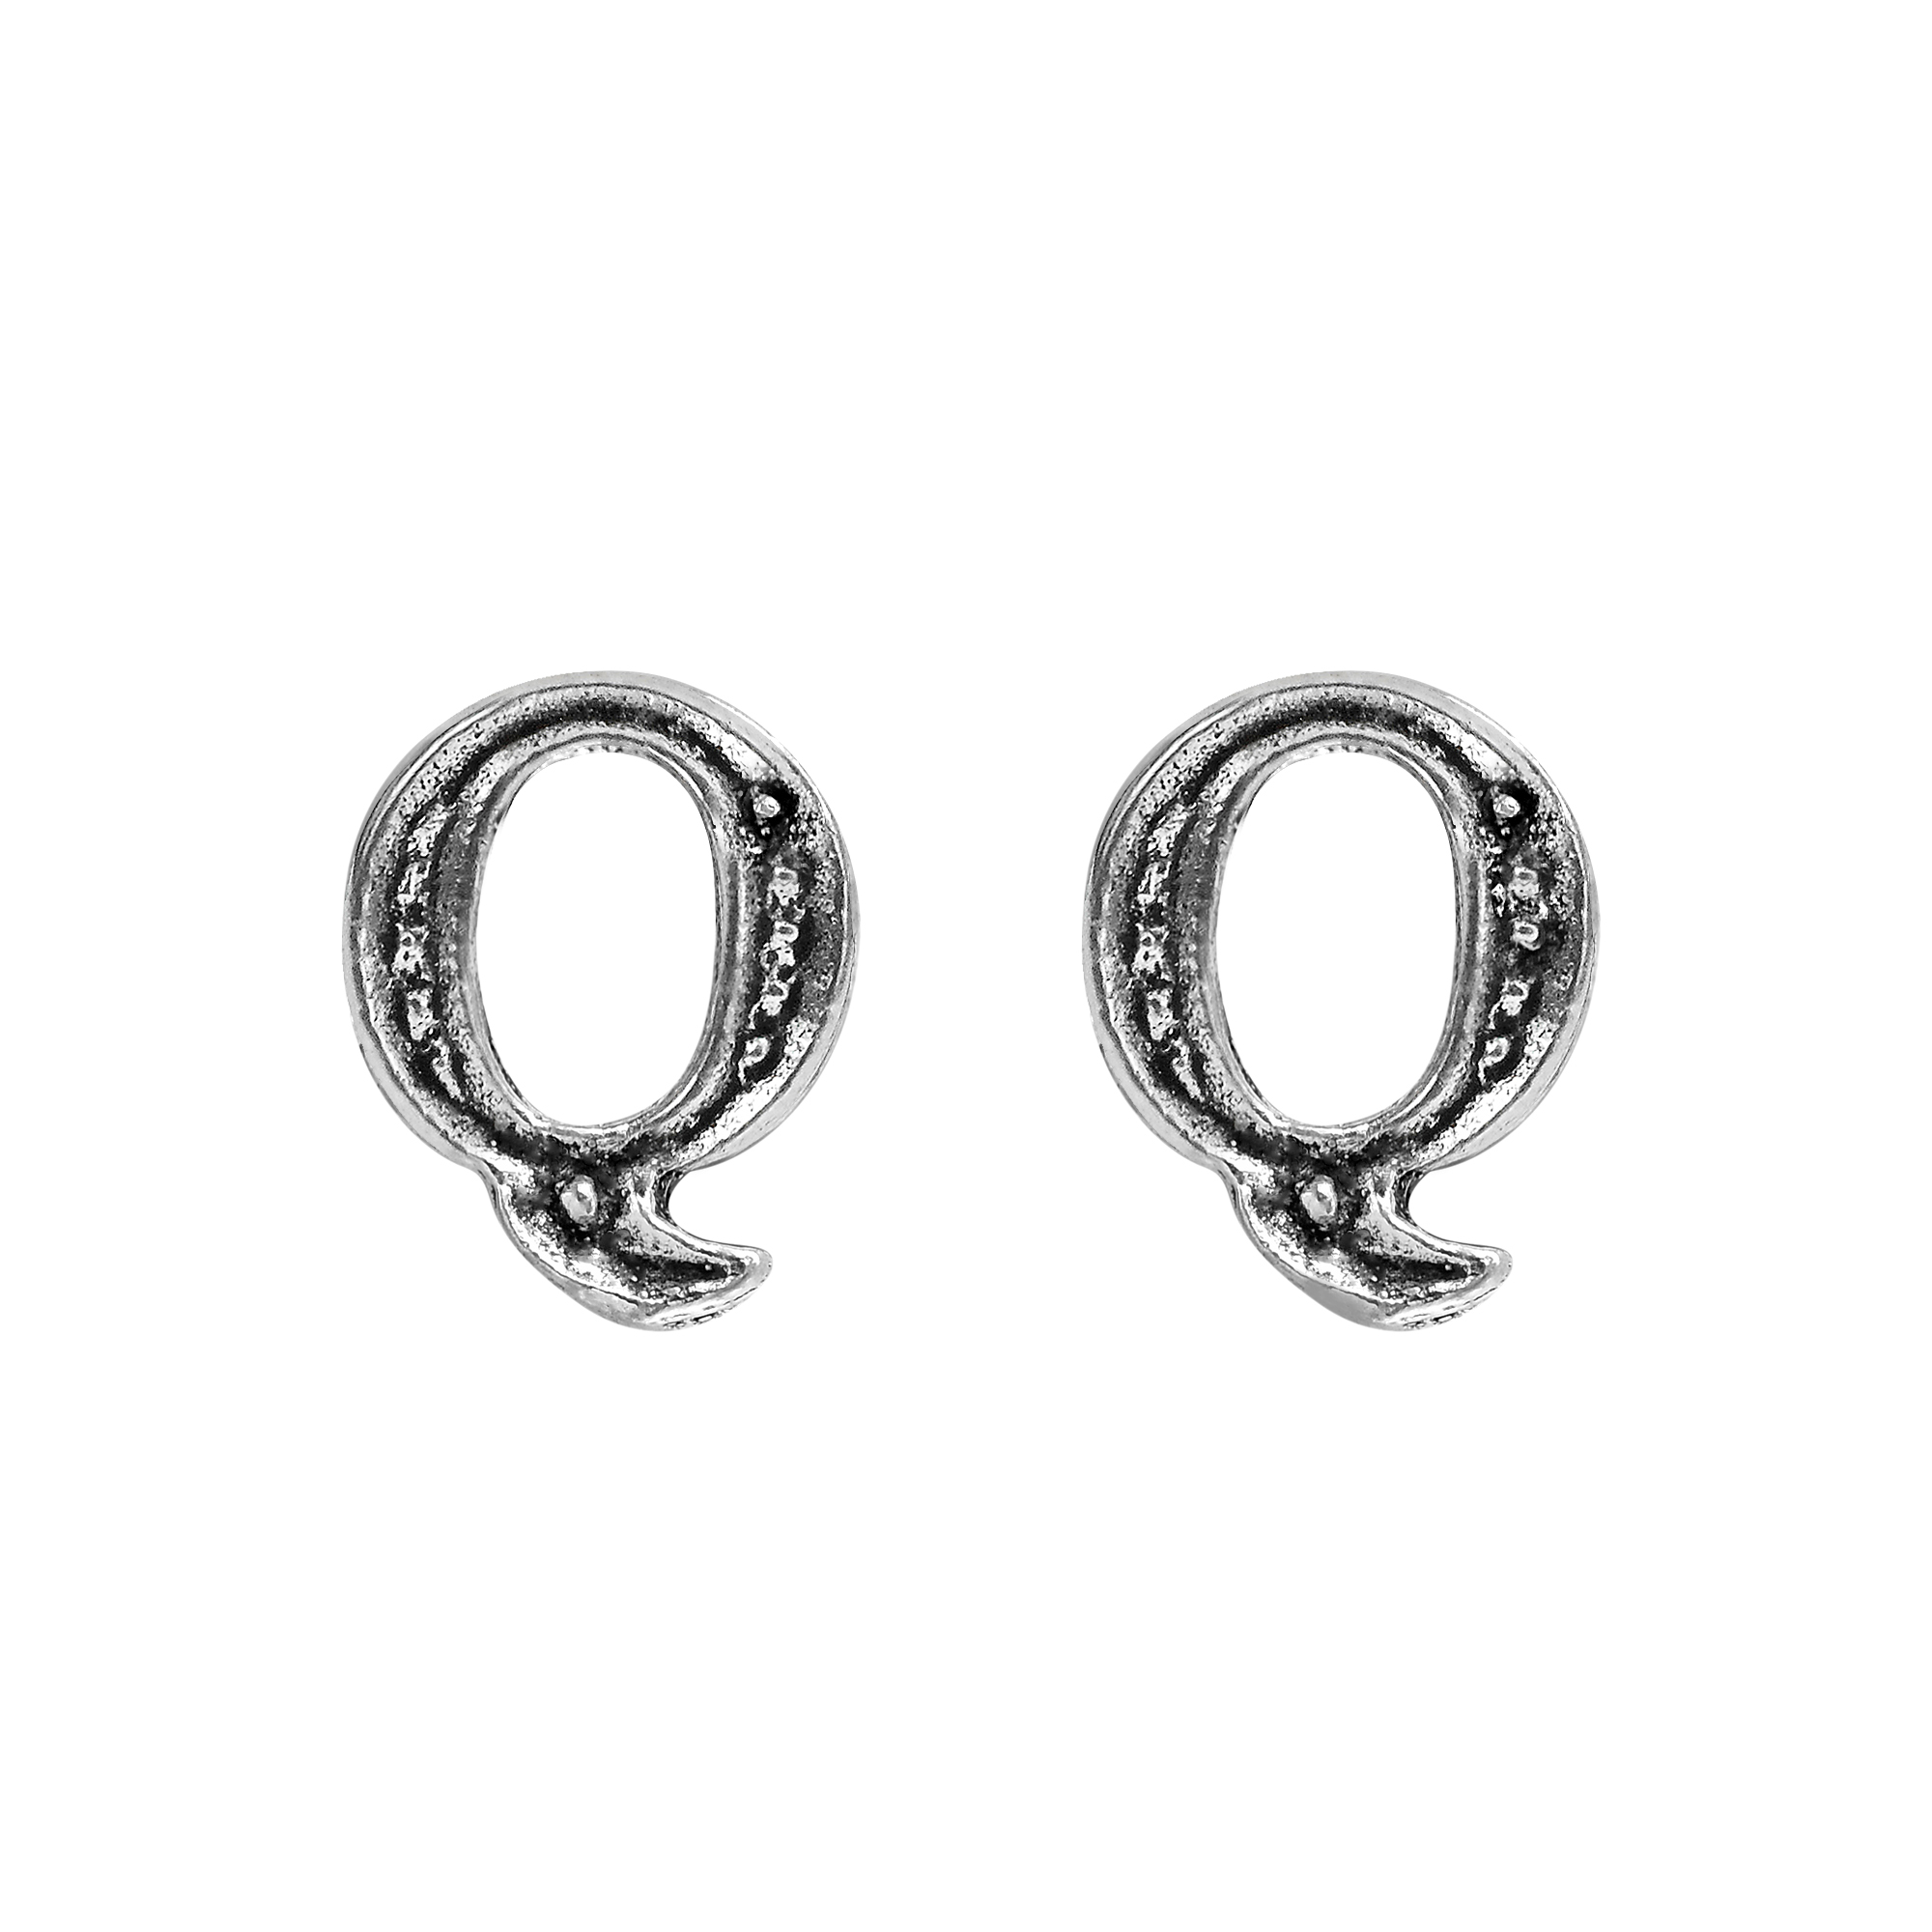 pair set mens one silver earrings stainless sword men cool kantana steel s stud itm